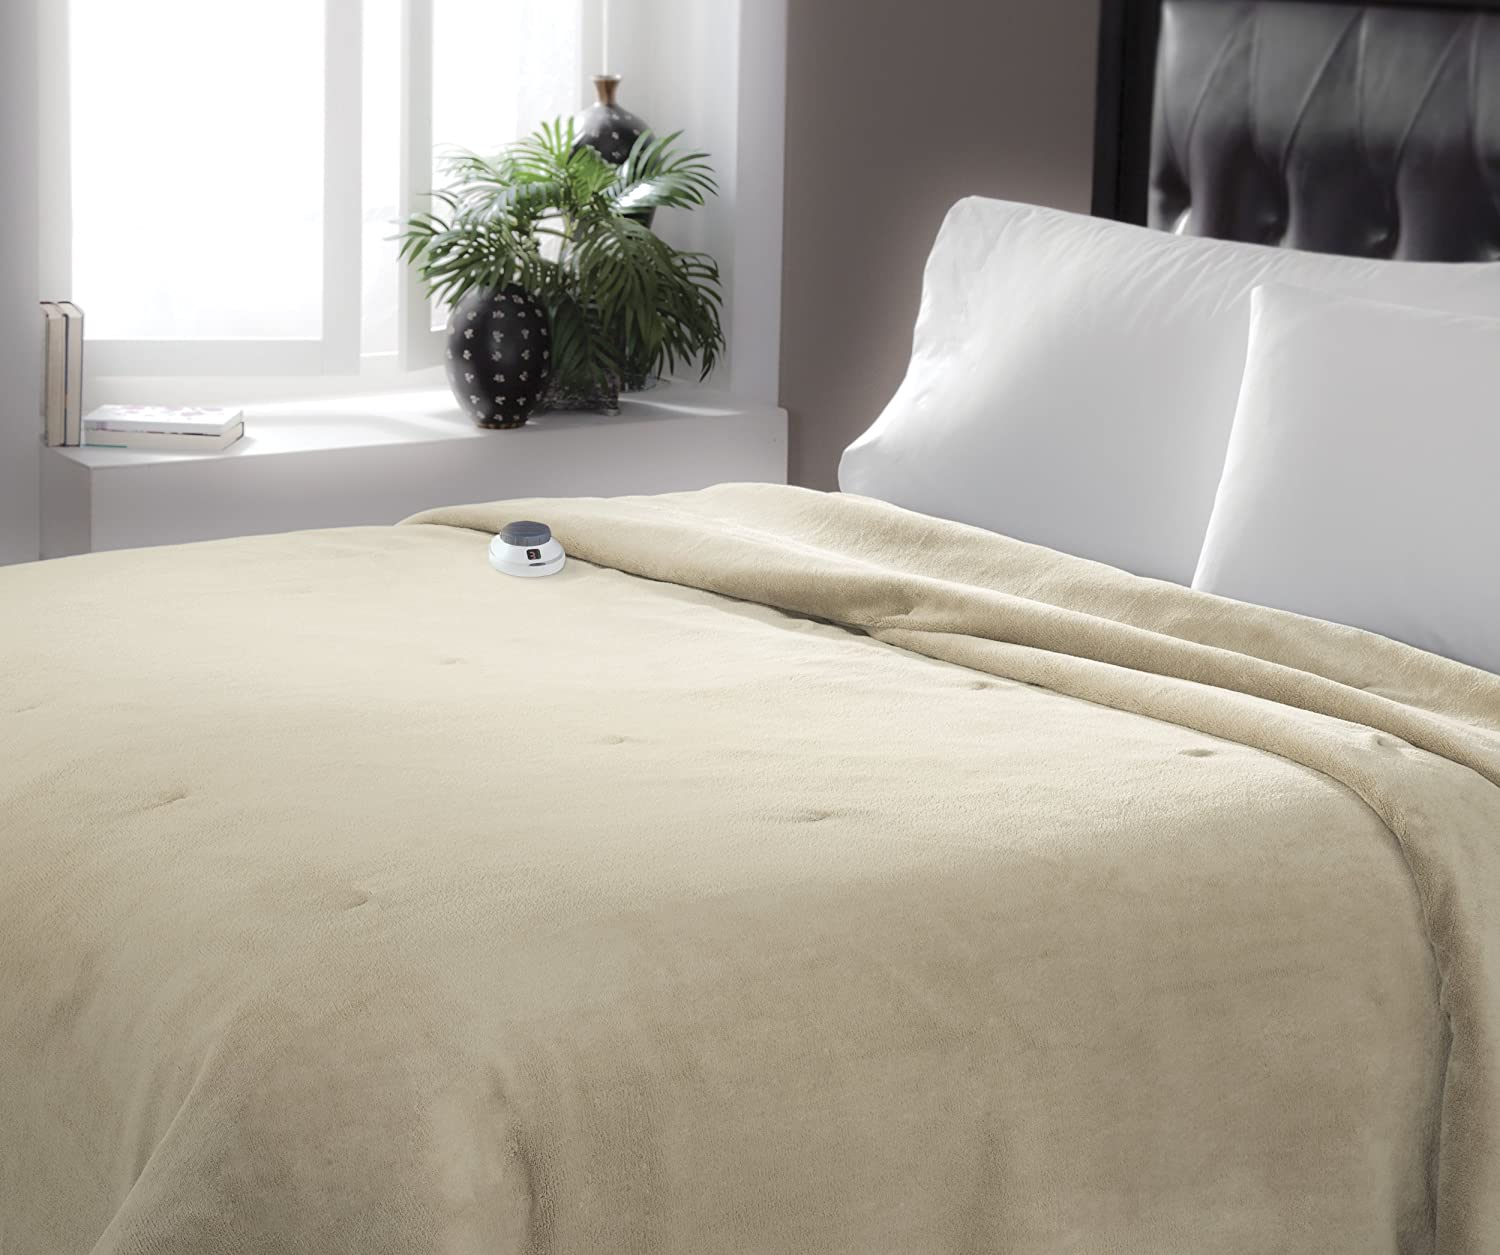 Serta | Luxe Plush Fleece Heated Electric Blanket with Safe & Warm Low-Voltage Technology, Twin, Pearl